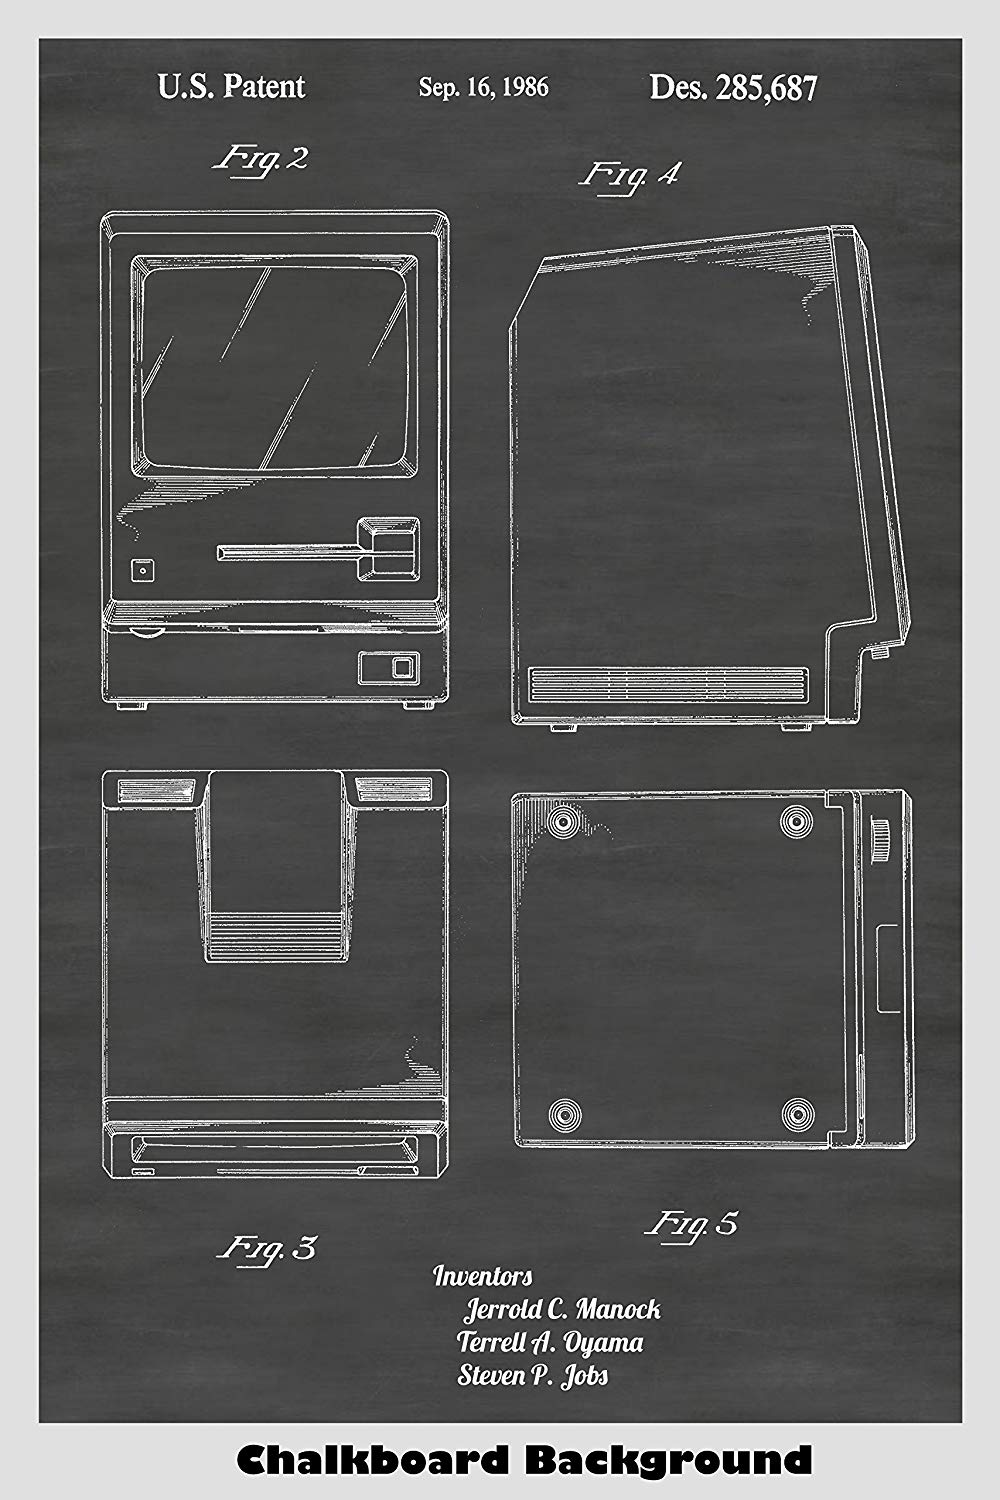 Apple Macintosh Patent Print showing the look of its unique housing.